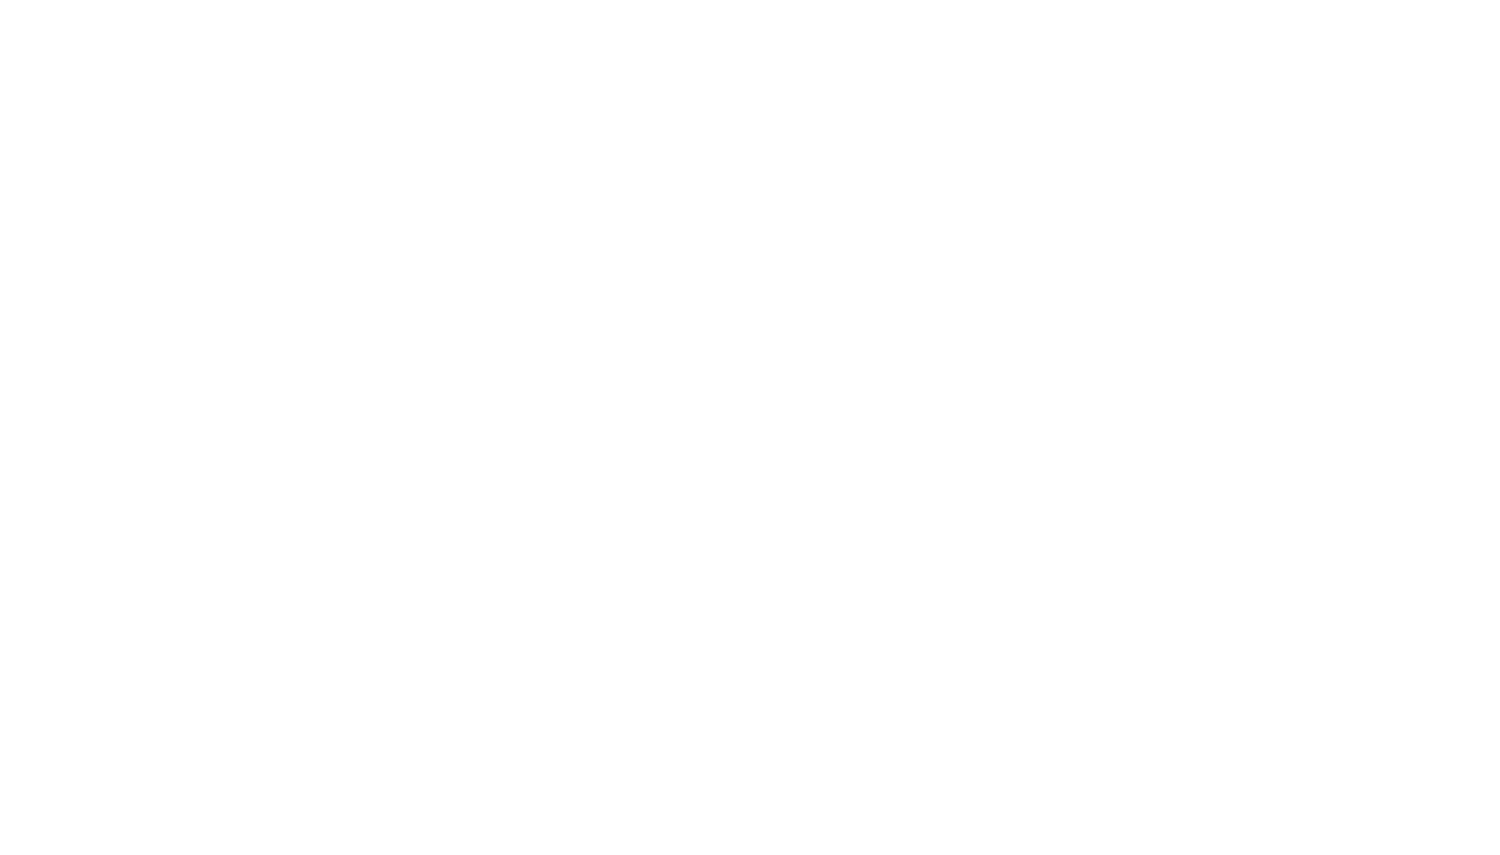 Allira Case